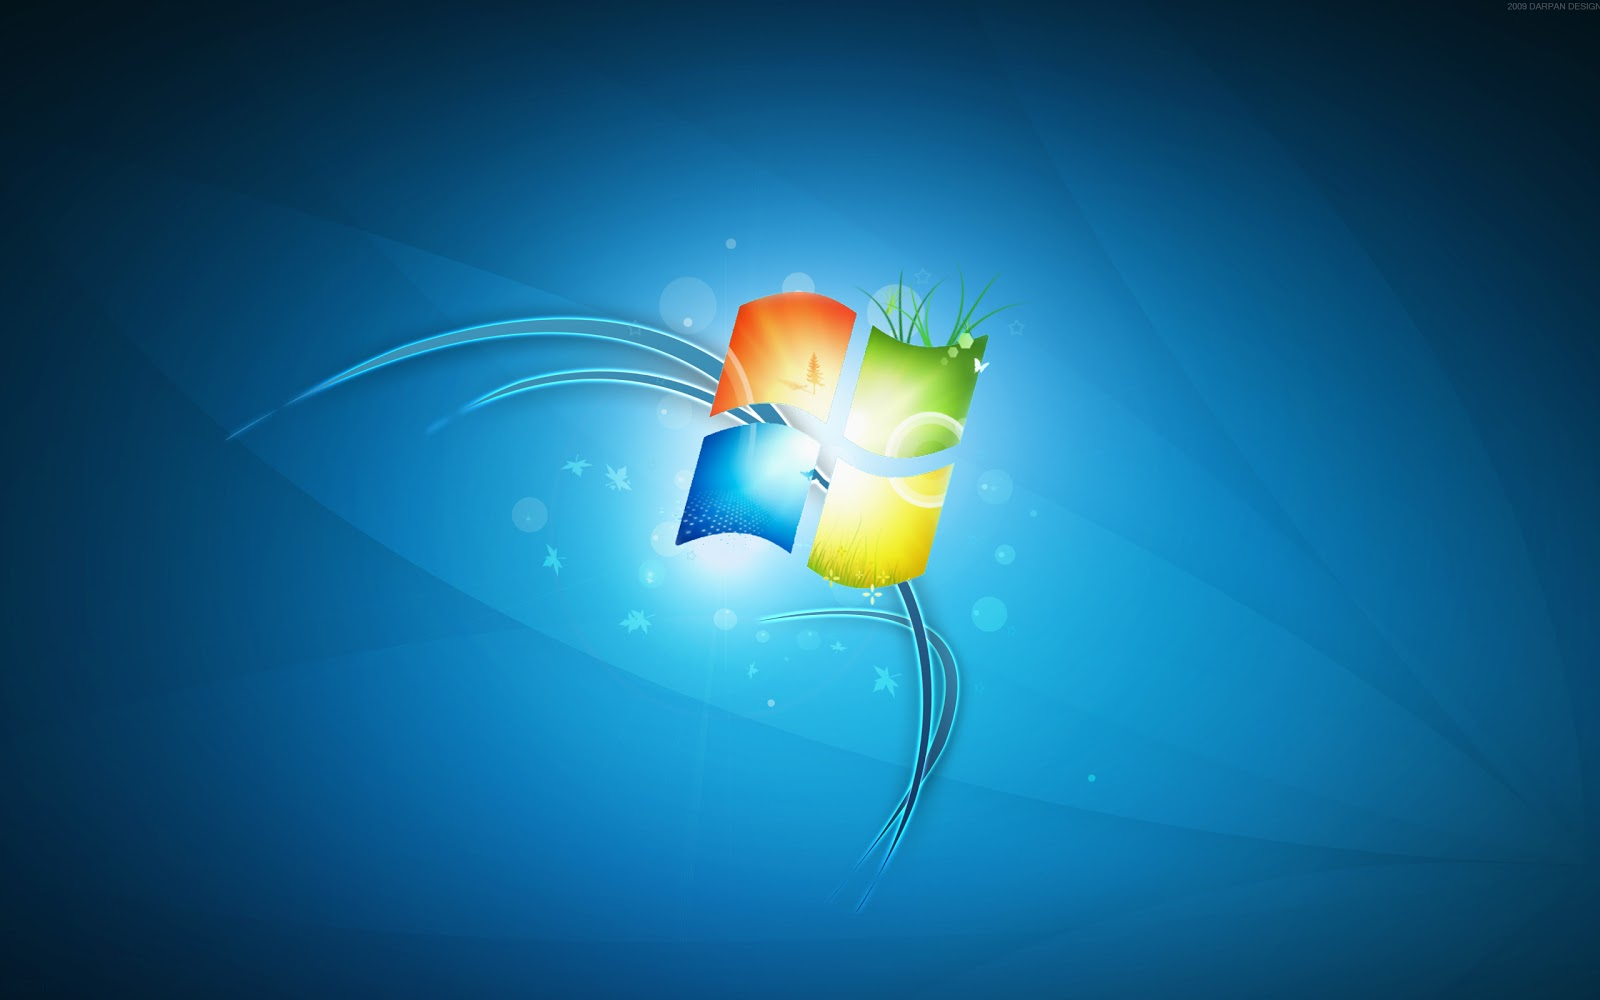 Download The Top Desktop Wallpapers Windows 7 Hd Wallpapers